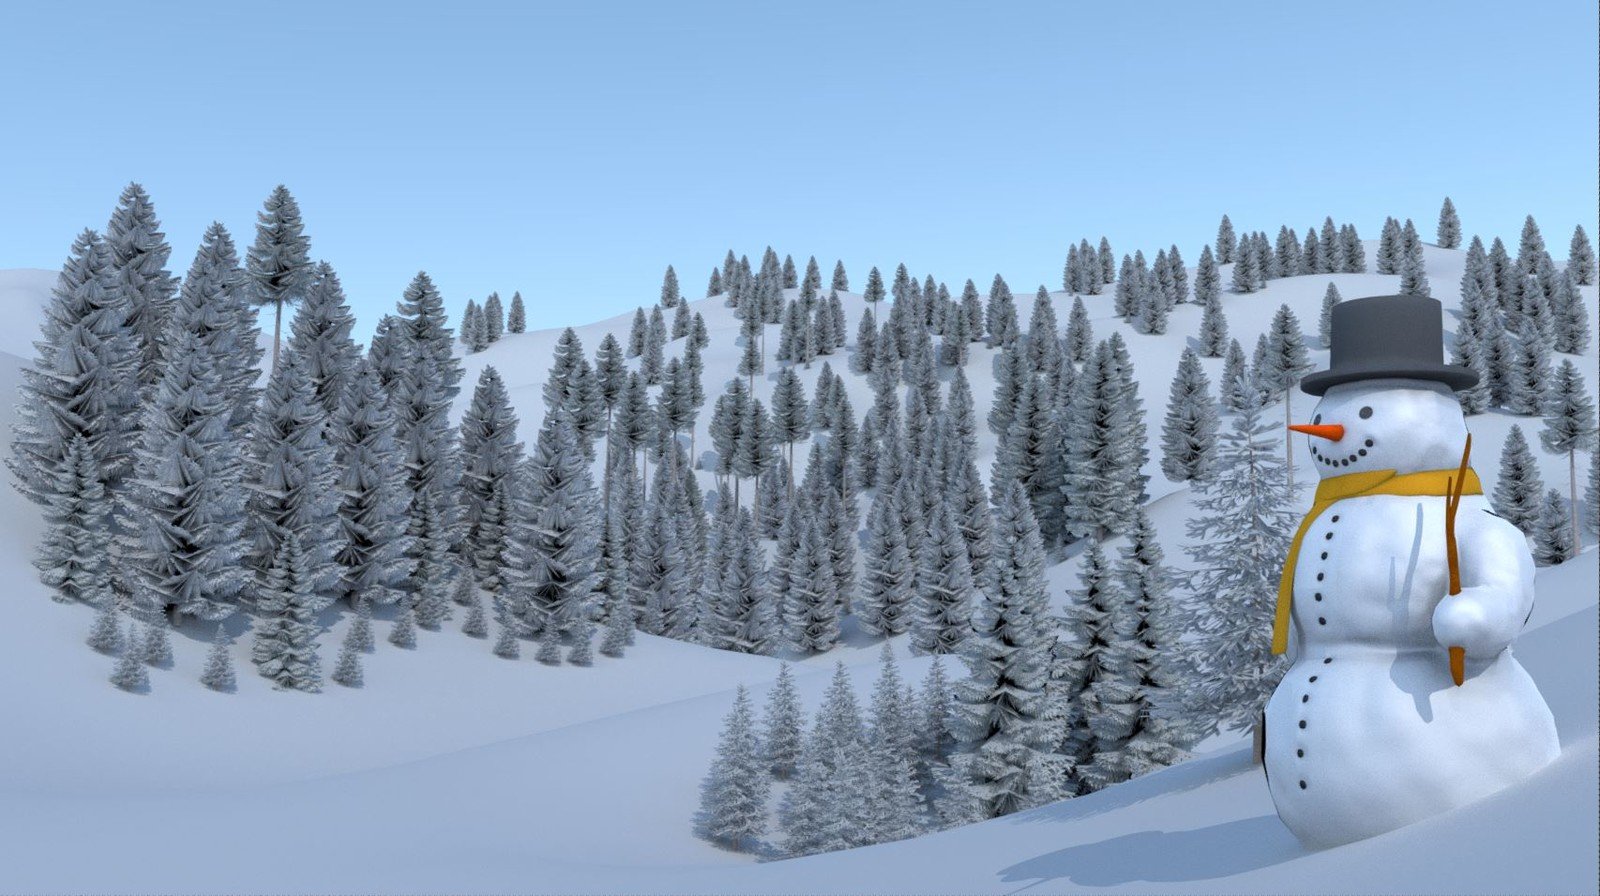 Test-Render 1 with high-poly trees.